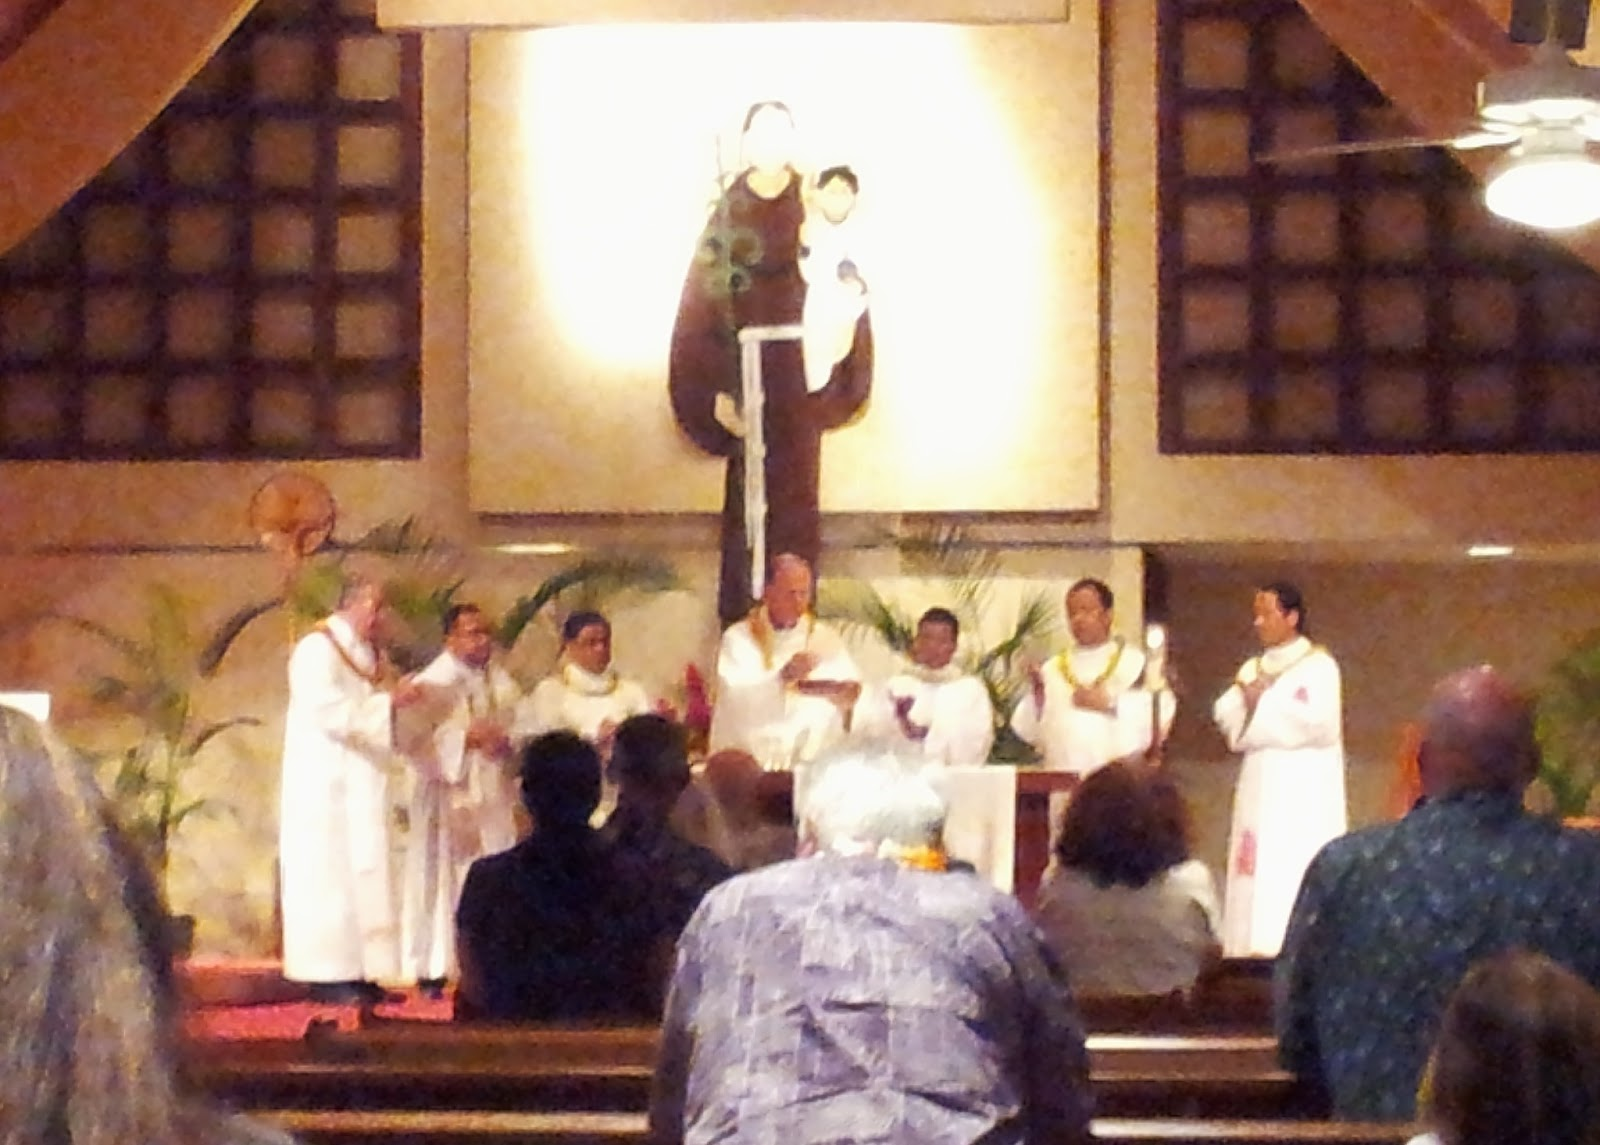 Feast day celebrations st anthony of padua church in kailua 6 13 2013